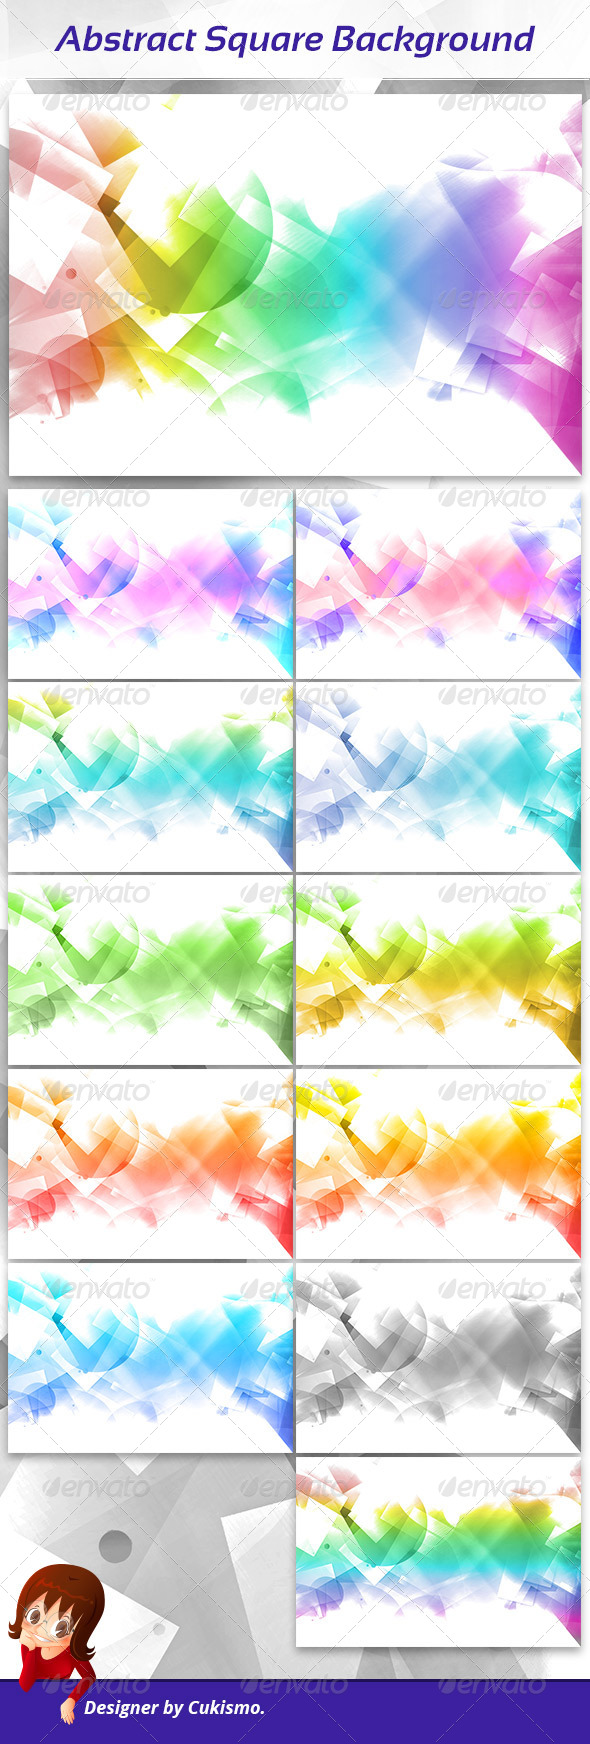 GraphicRiver Abstract Square Background 5966460